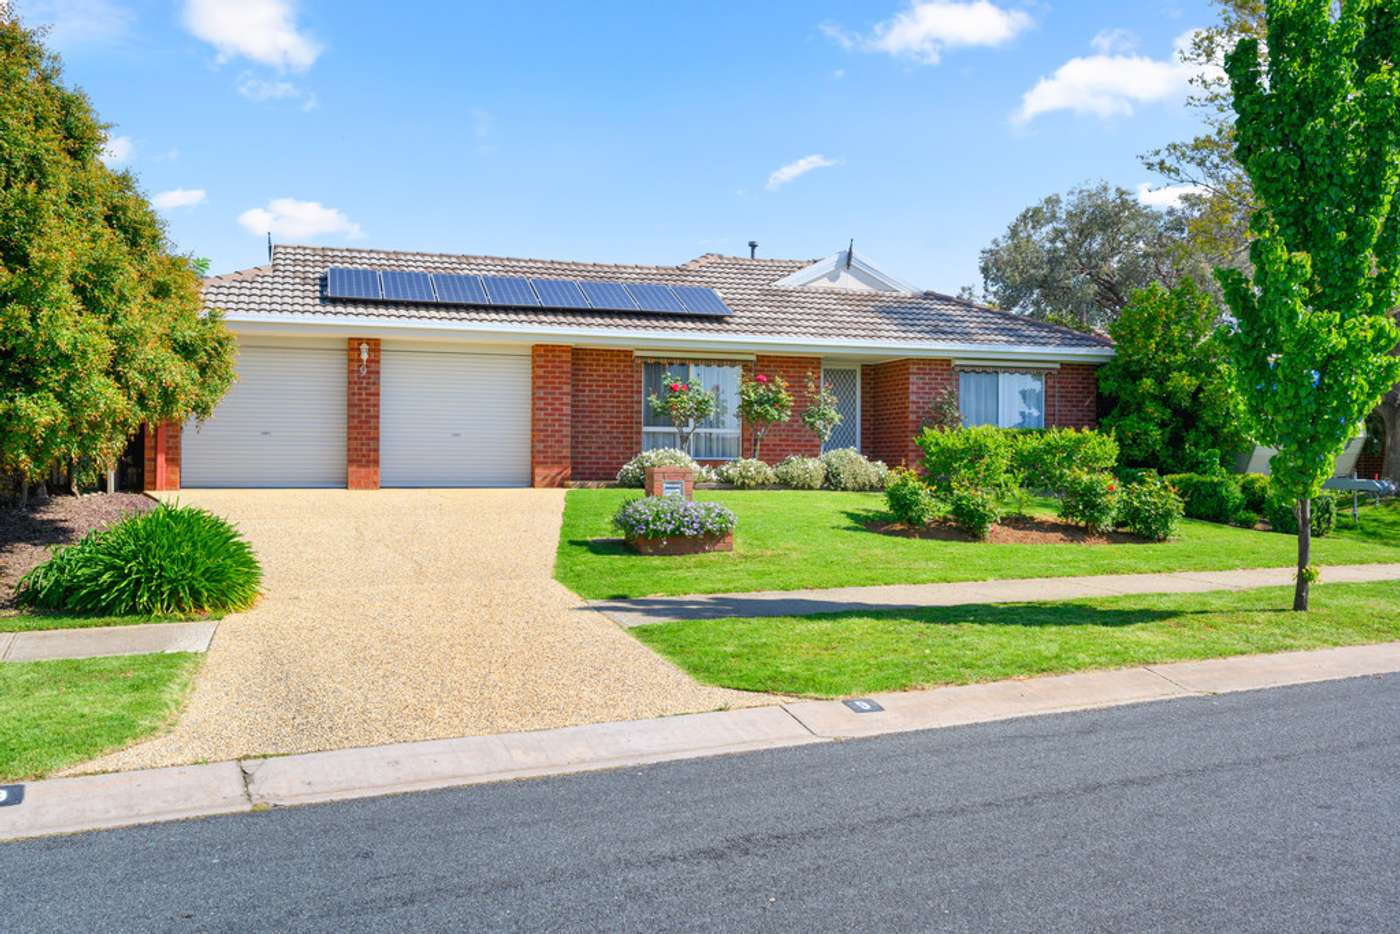 Main view of Homely house listing, 9 Mashie Way, Wodonga VIC 3690